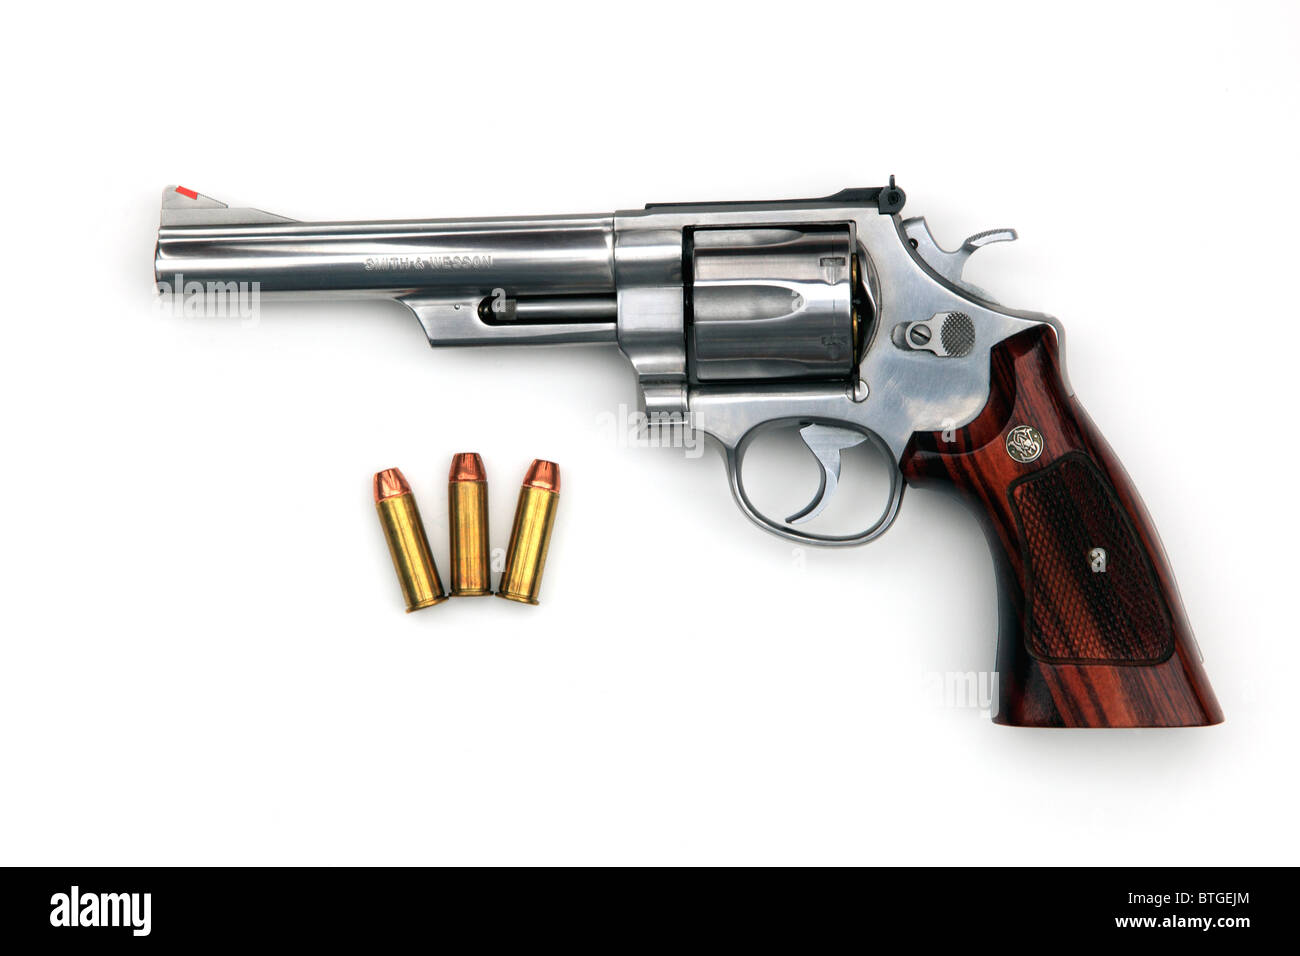 A .44 magnum revolver, the same type as used in the 'Dirty Harry' movies except this one is made in stainless - Stock Image